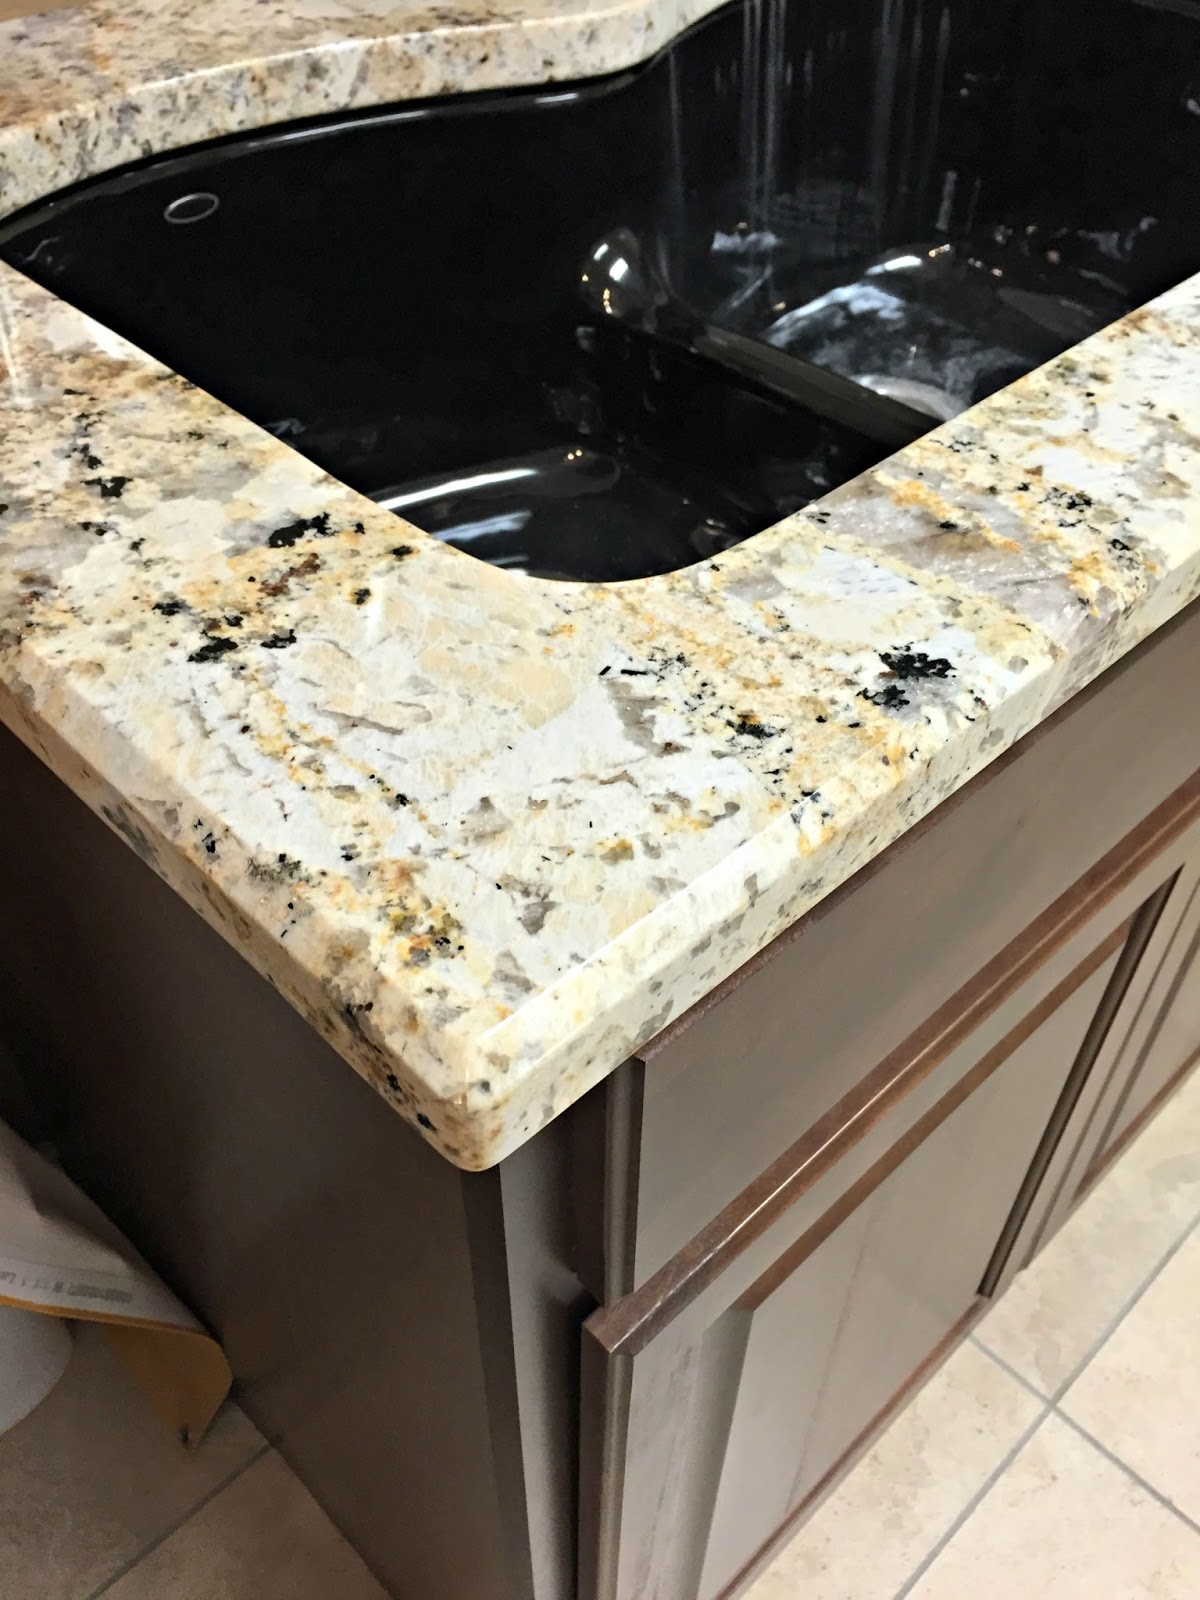 Saw To Cut Granite Countertop Our Beautiful River White Granite Countertops From